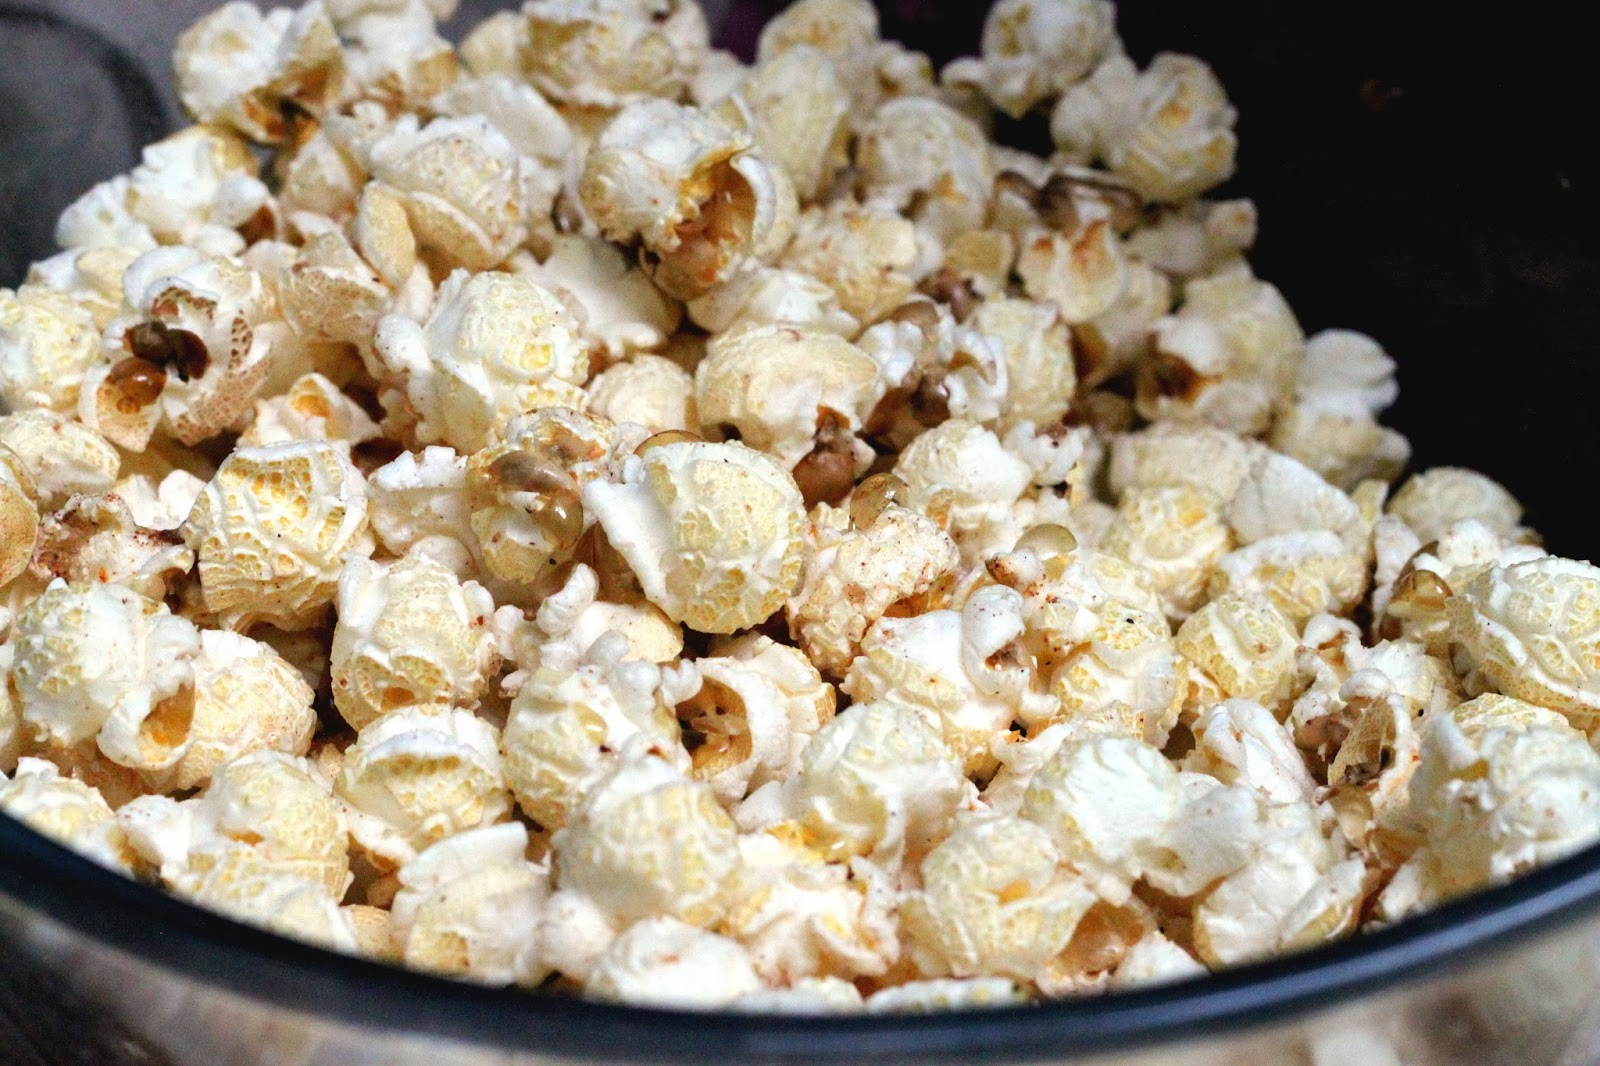 FOOD : SWEET AND SPICY POPCORN